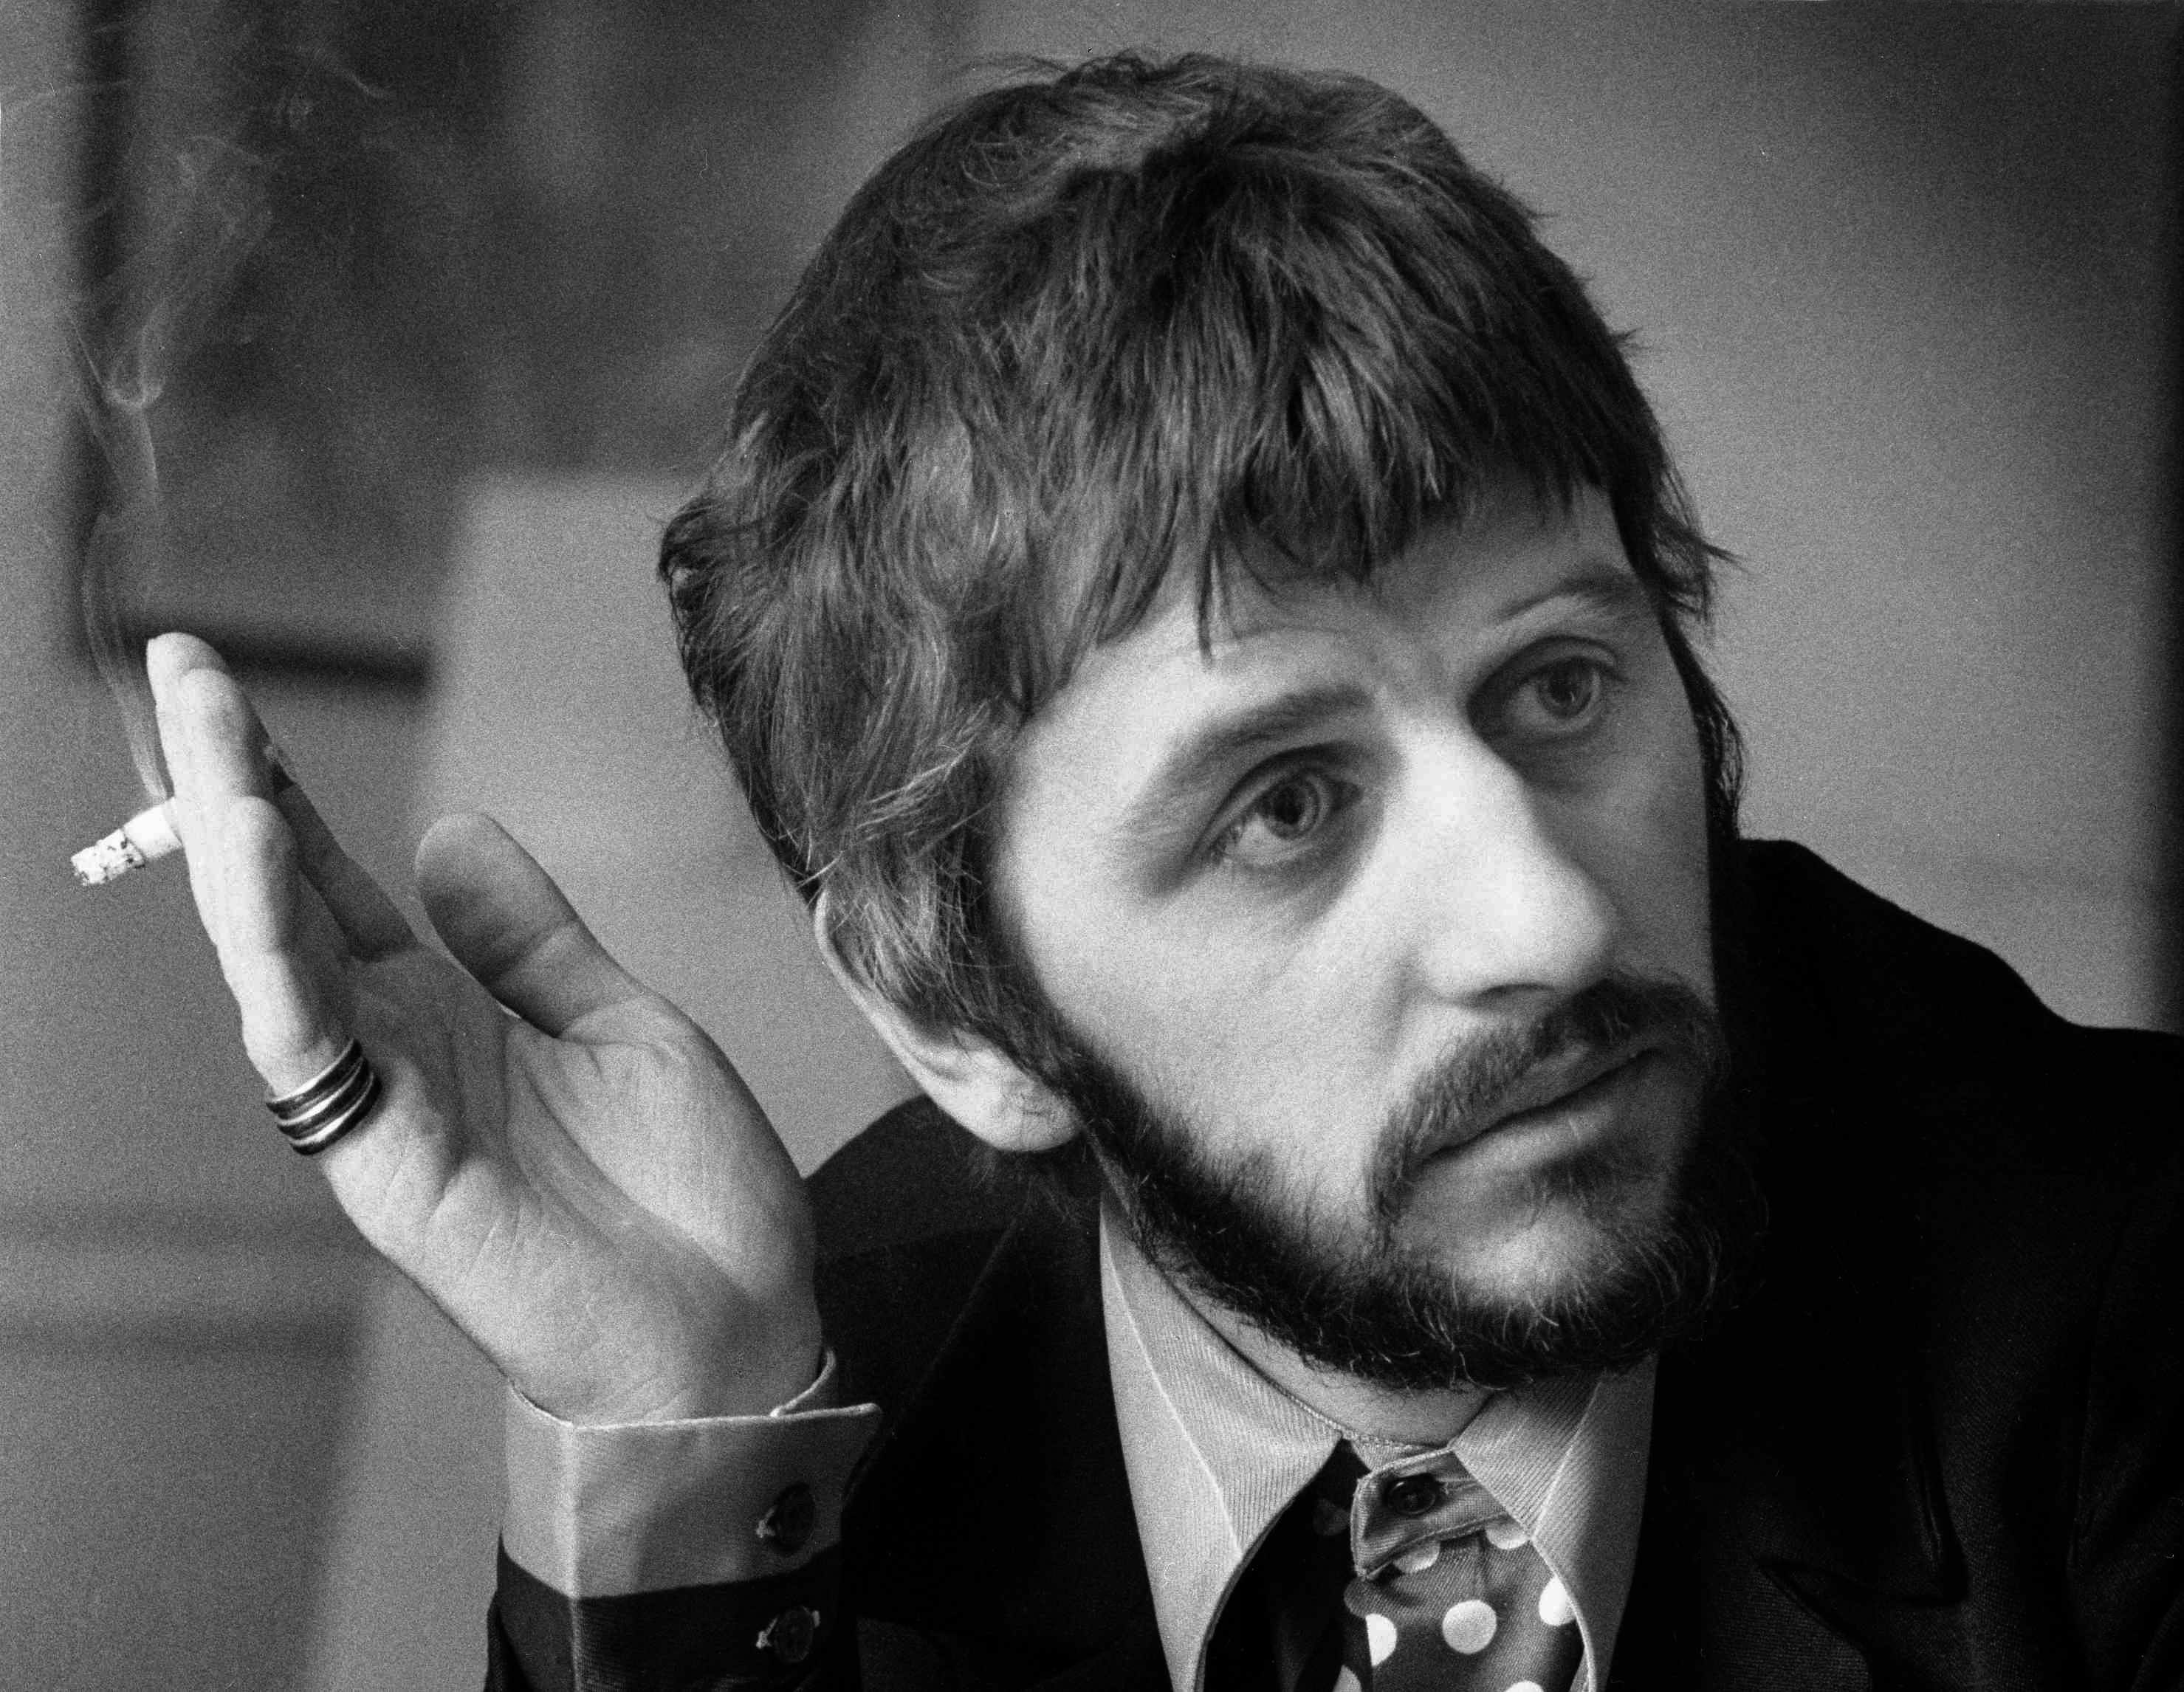 ringo starr - photo #19